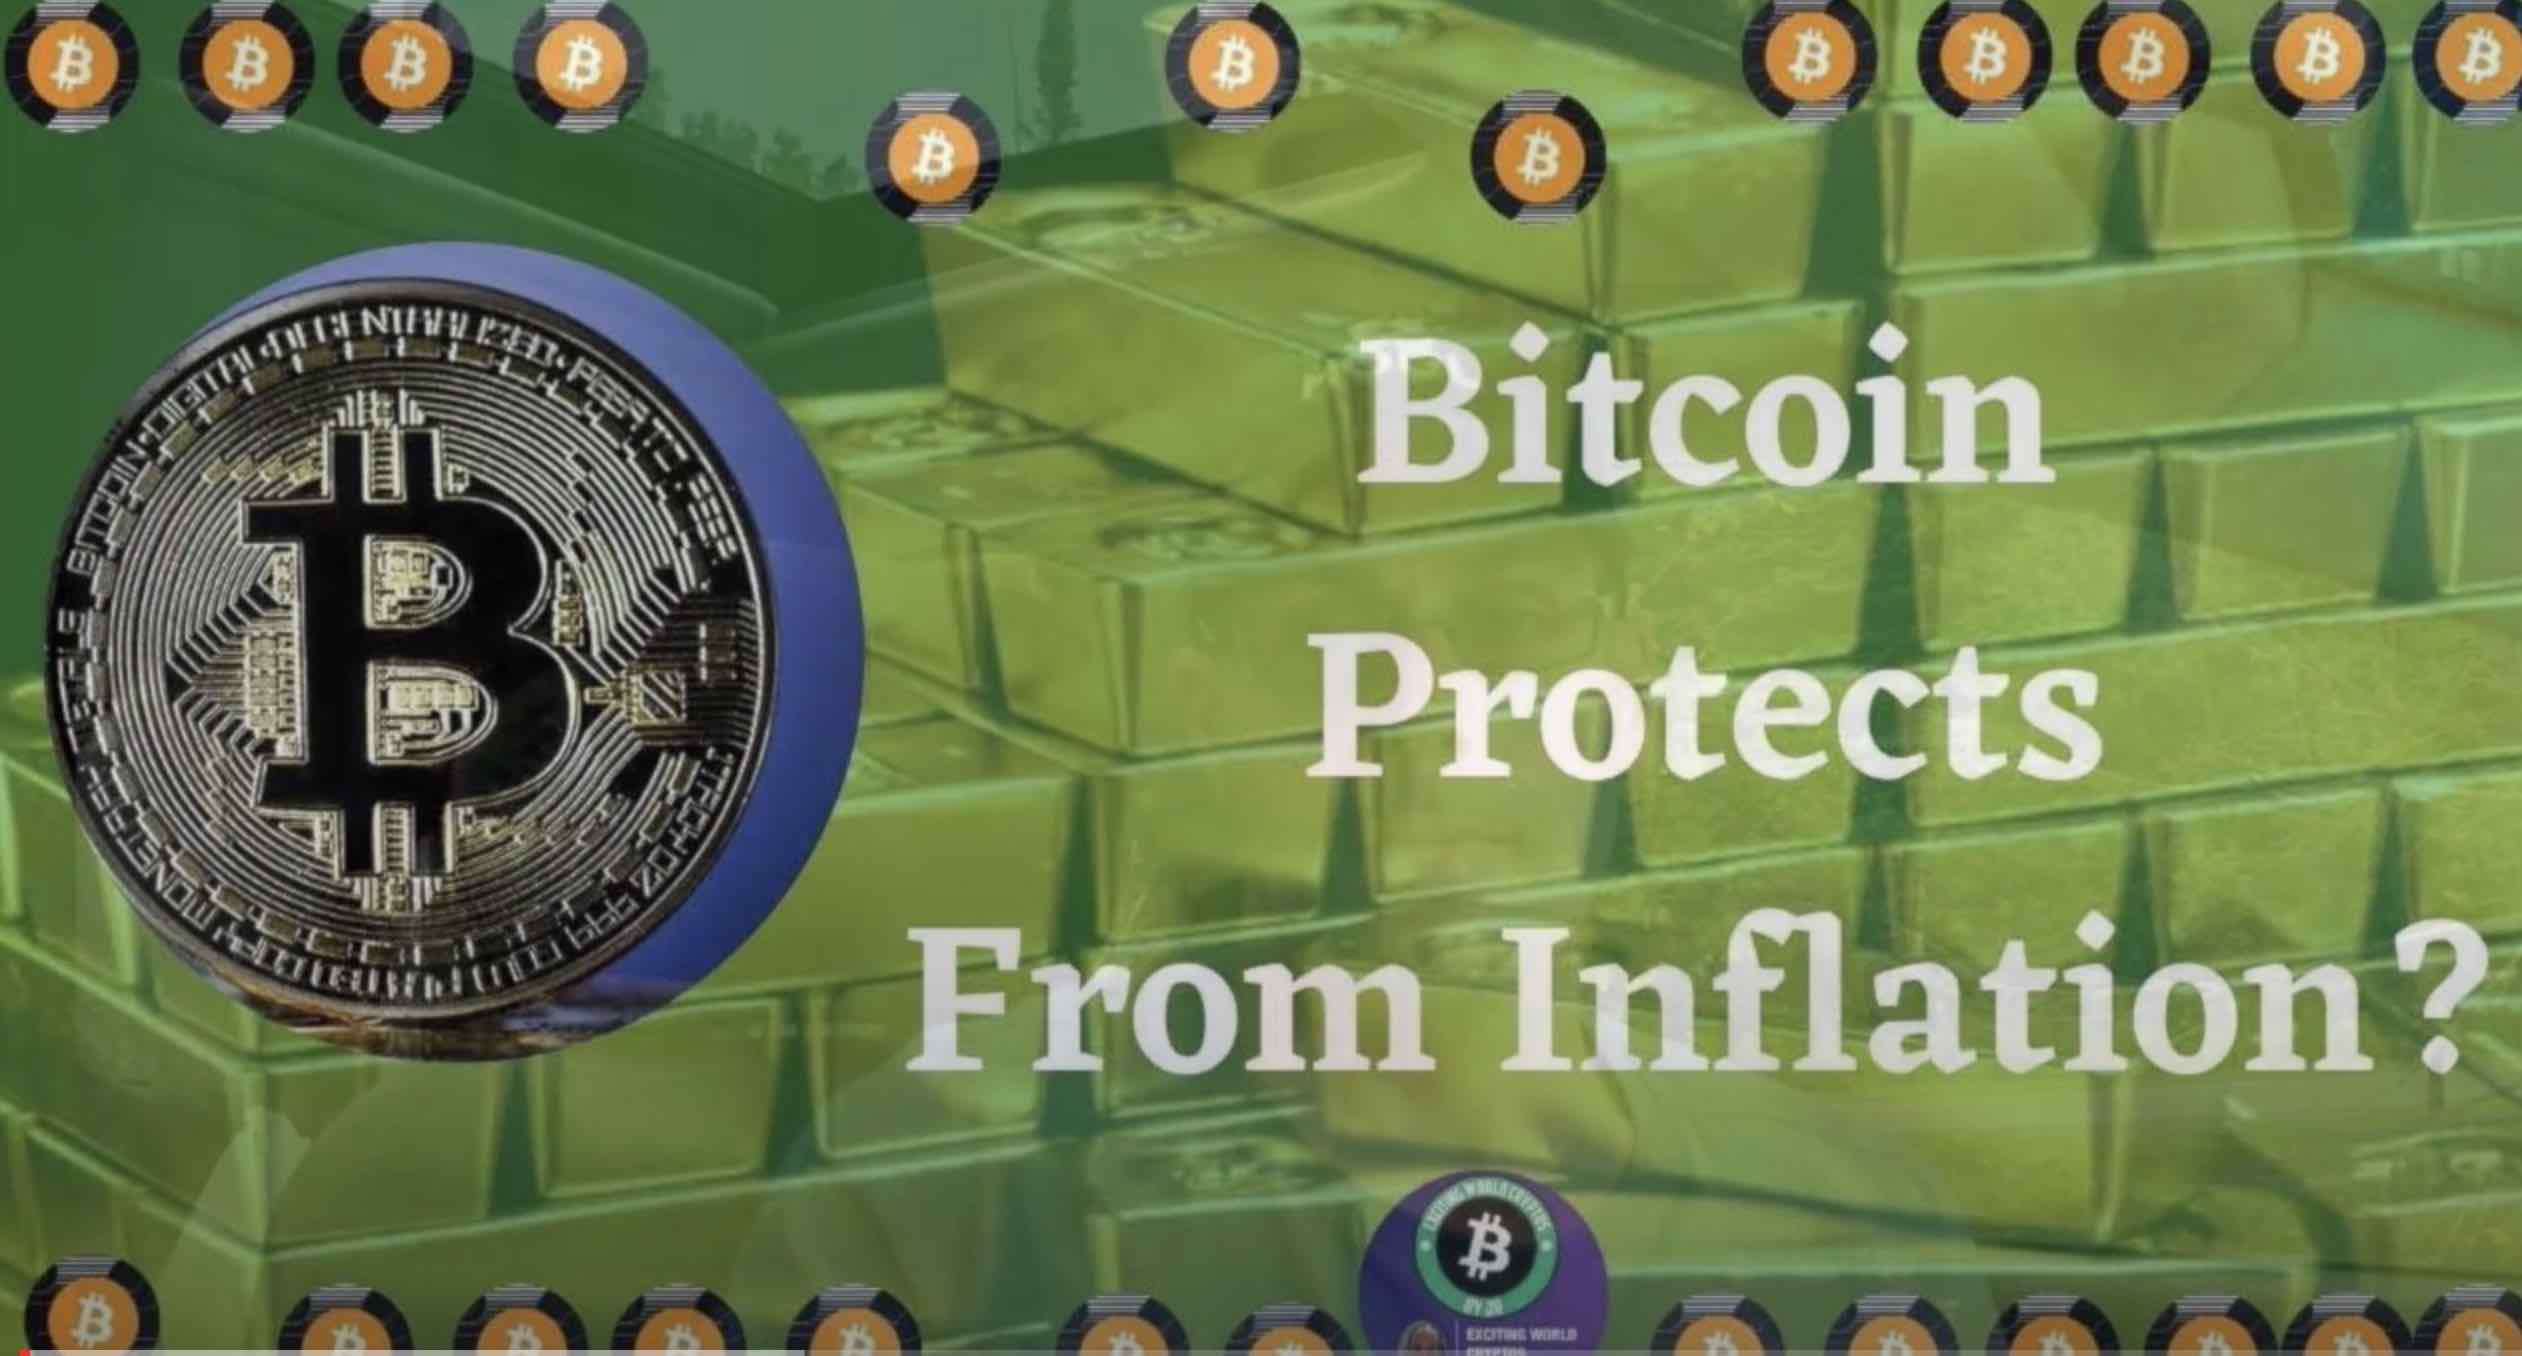 Bitcoin Reduces Inflation